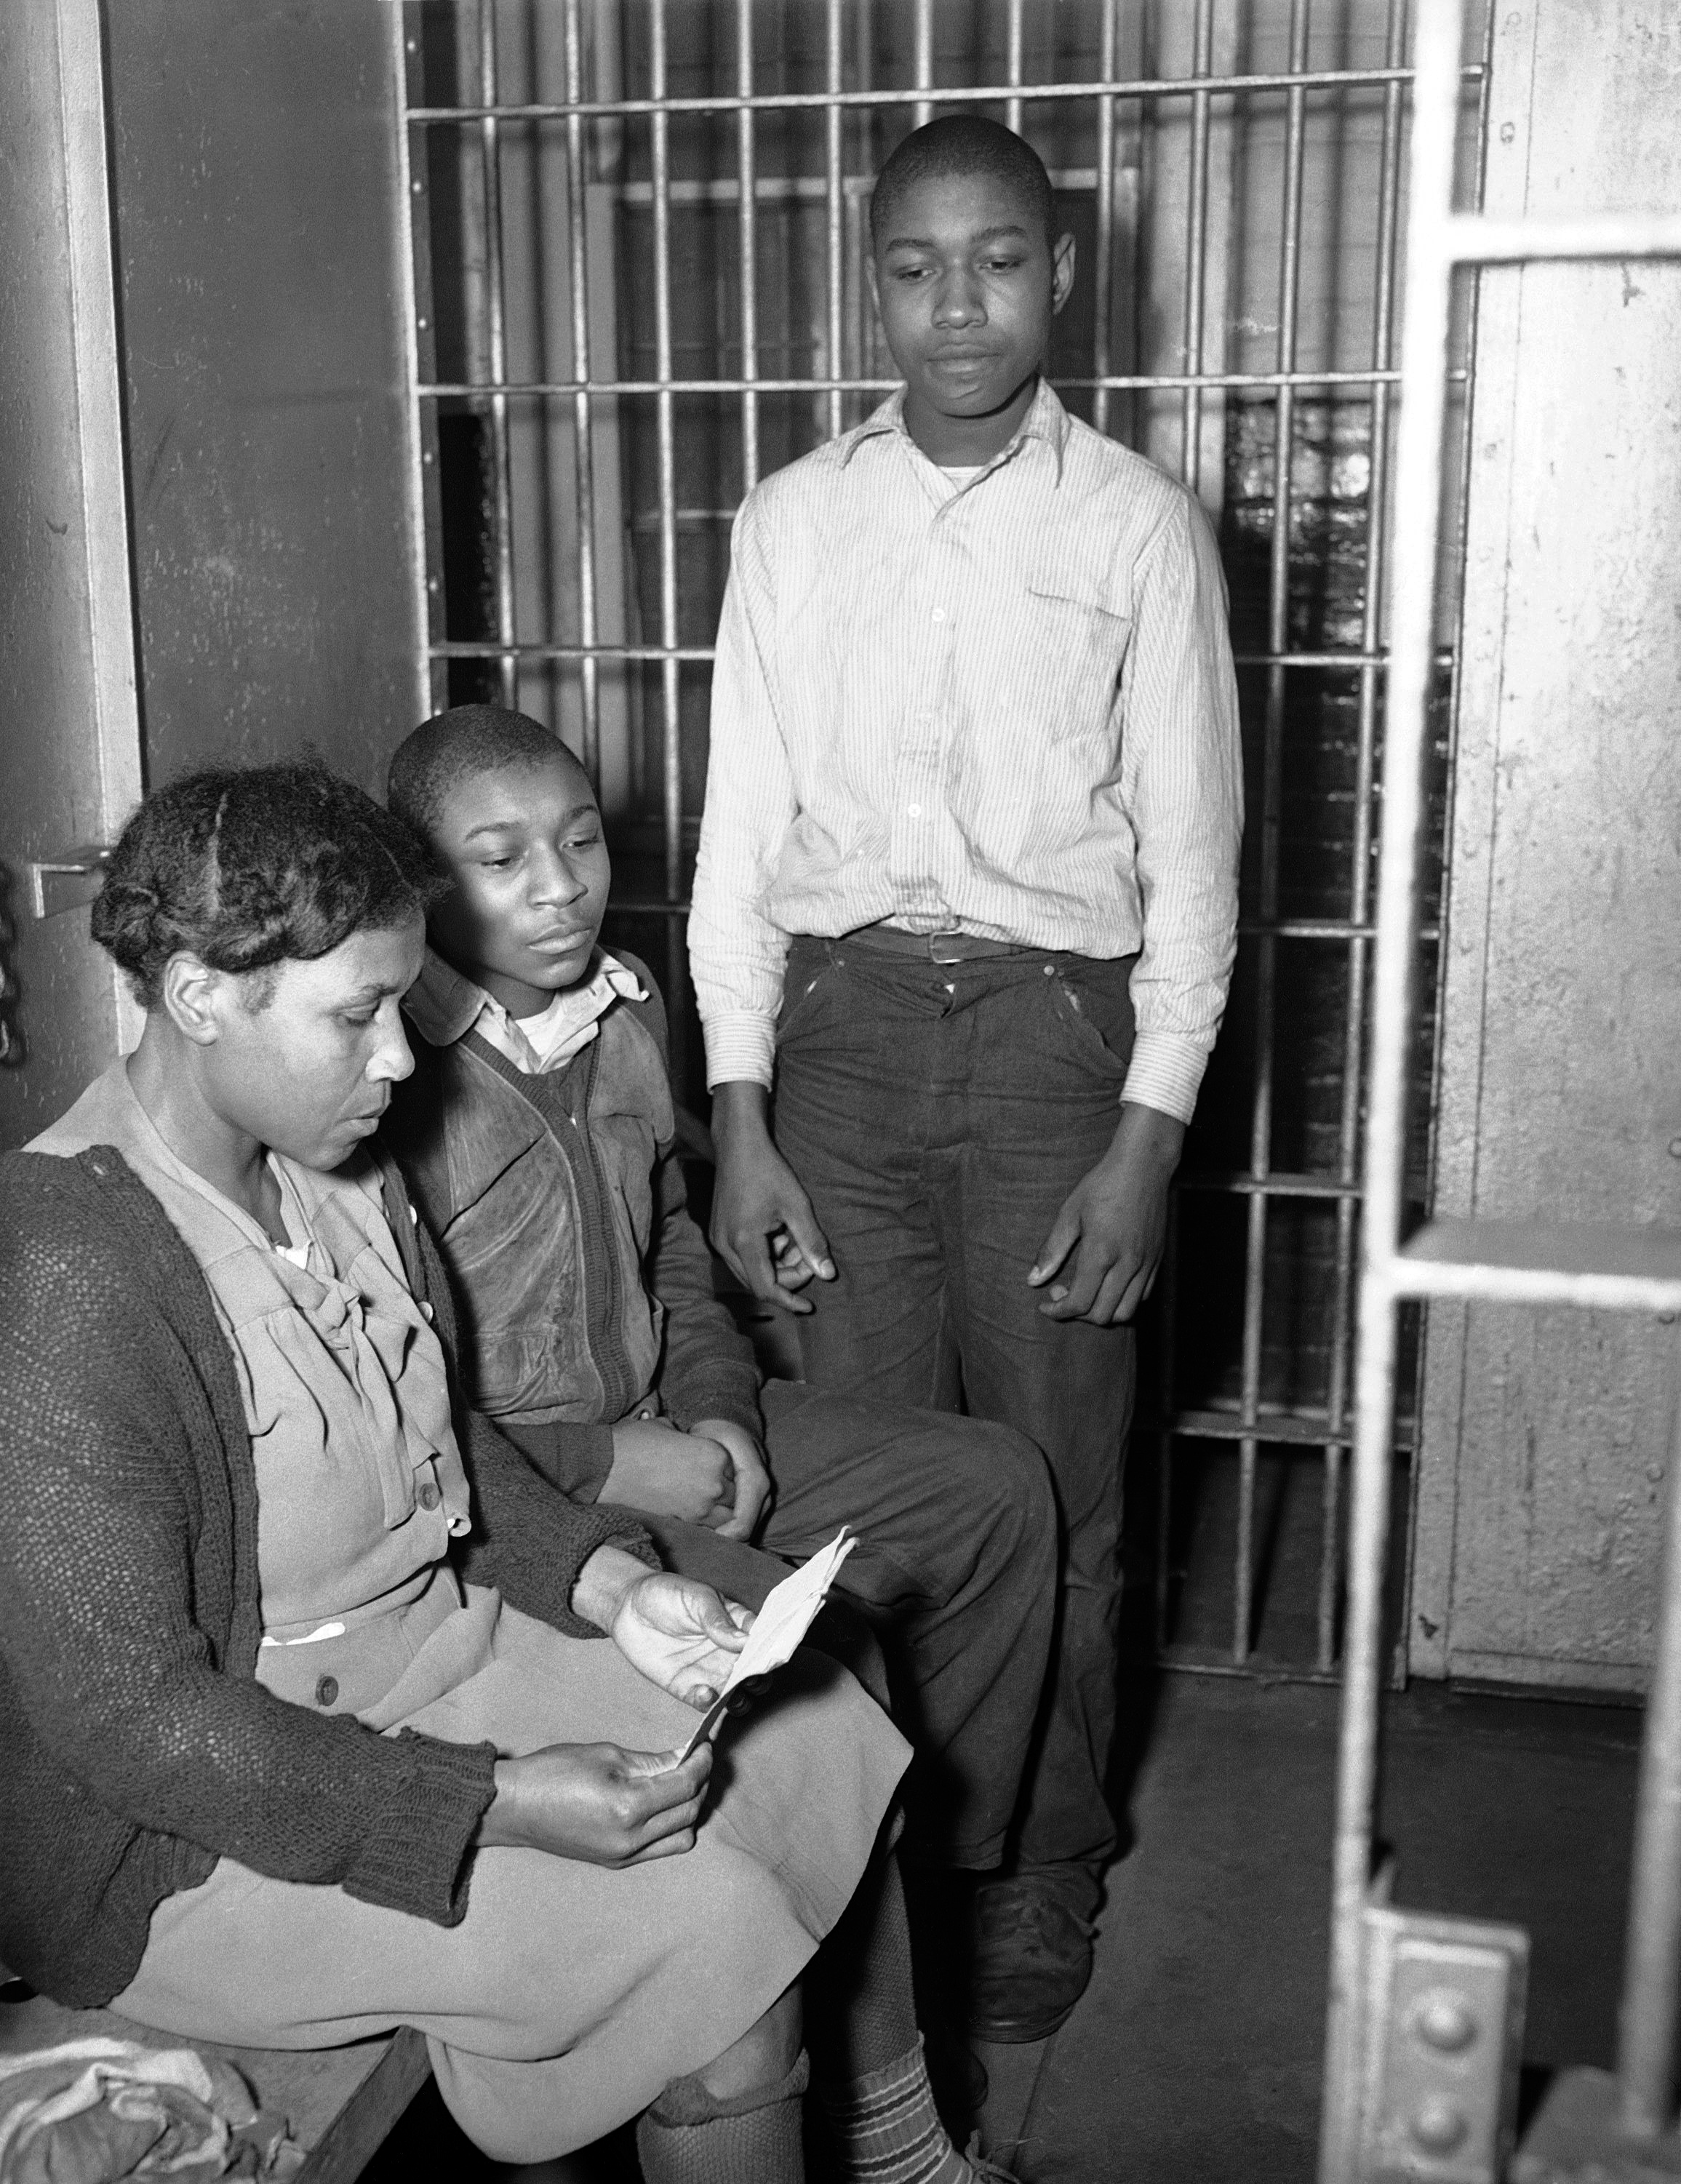 Figure 47. Rosa Lee Ingram and sons in jail cell, Albany, Georgia, March 3, 1948